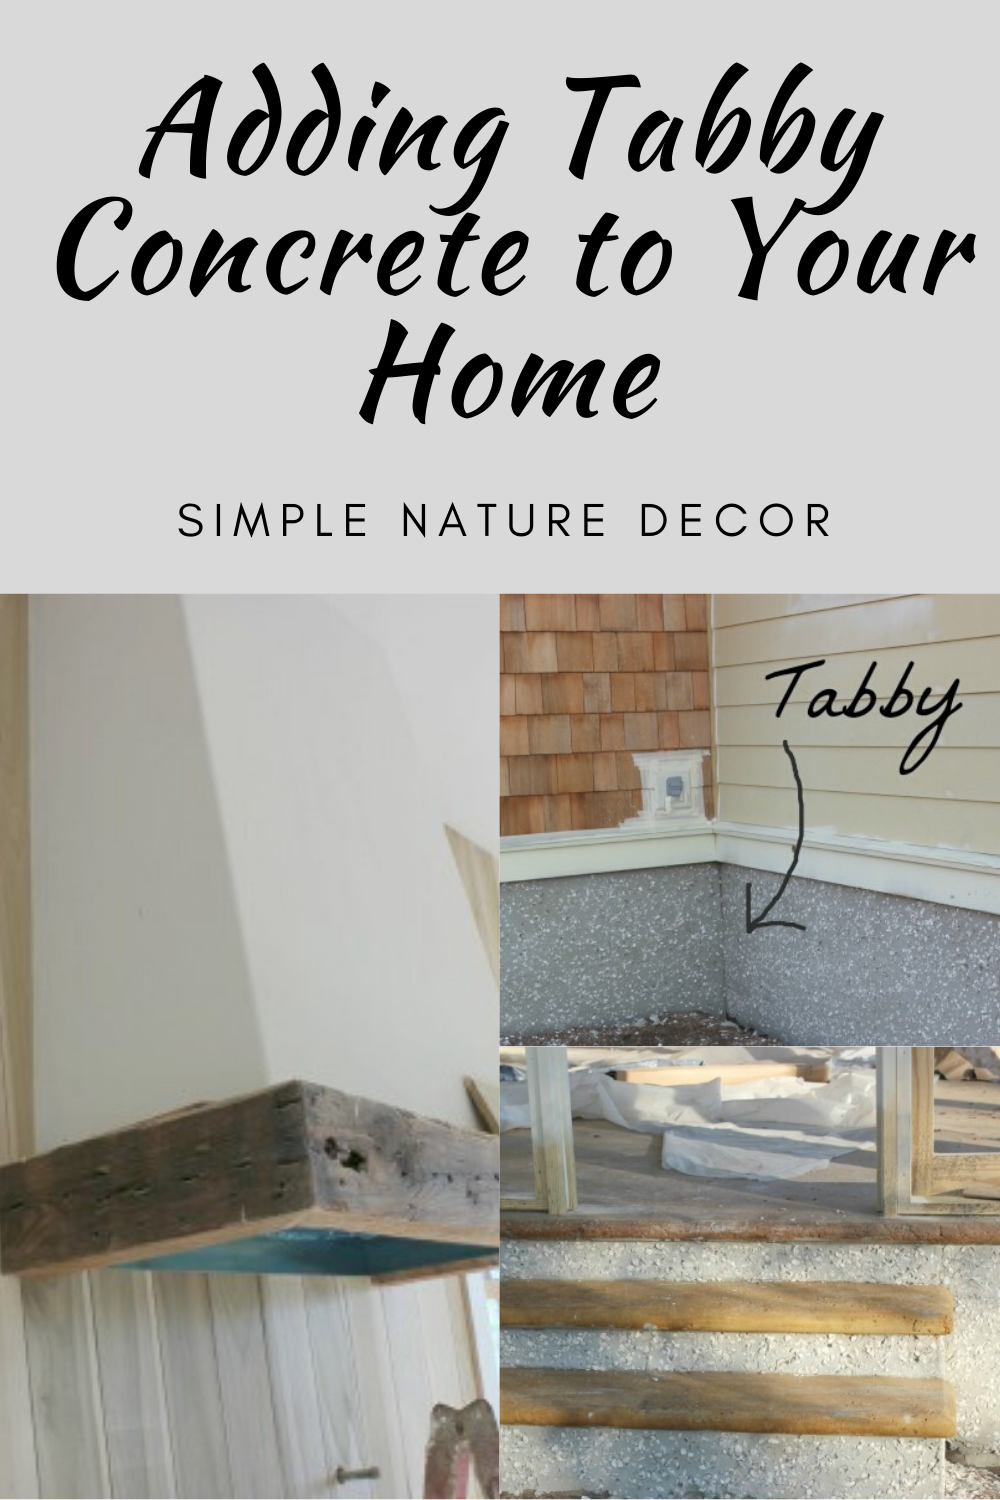 How to add tabby concrete to your home